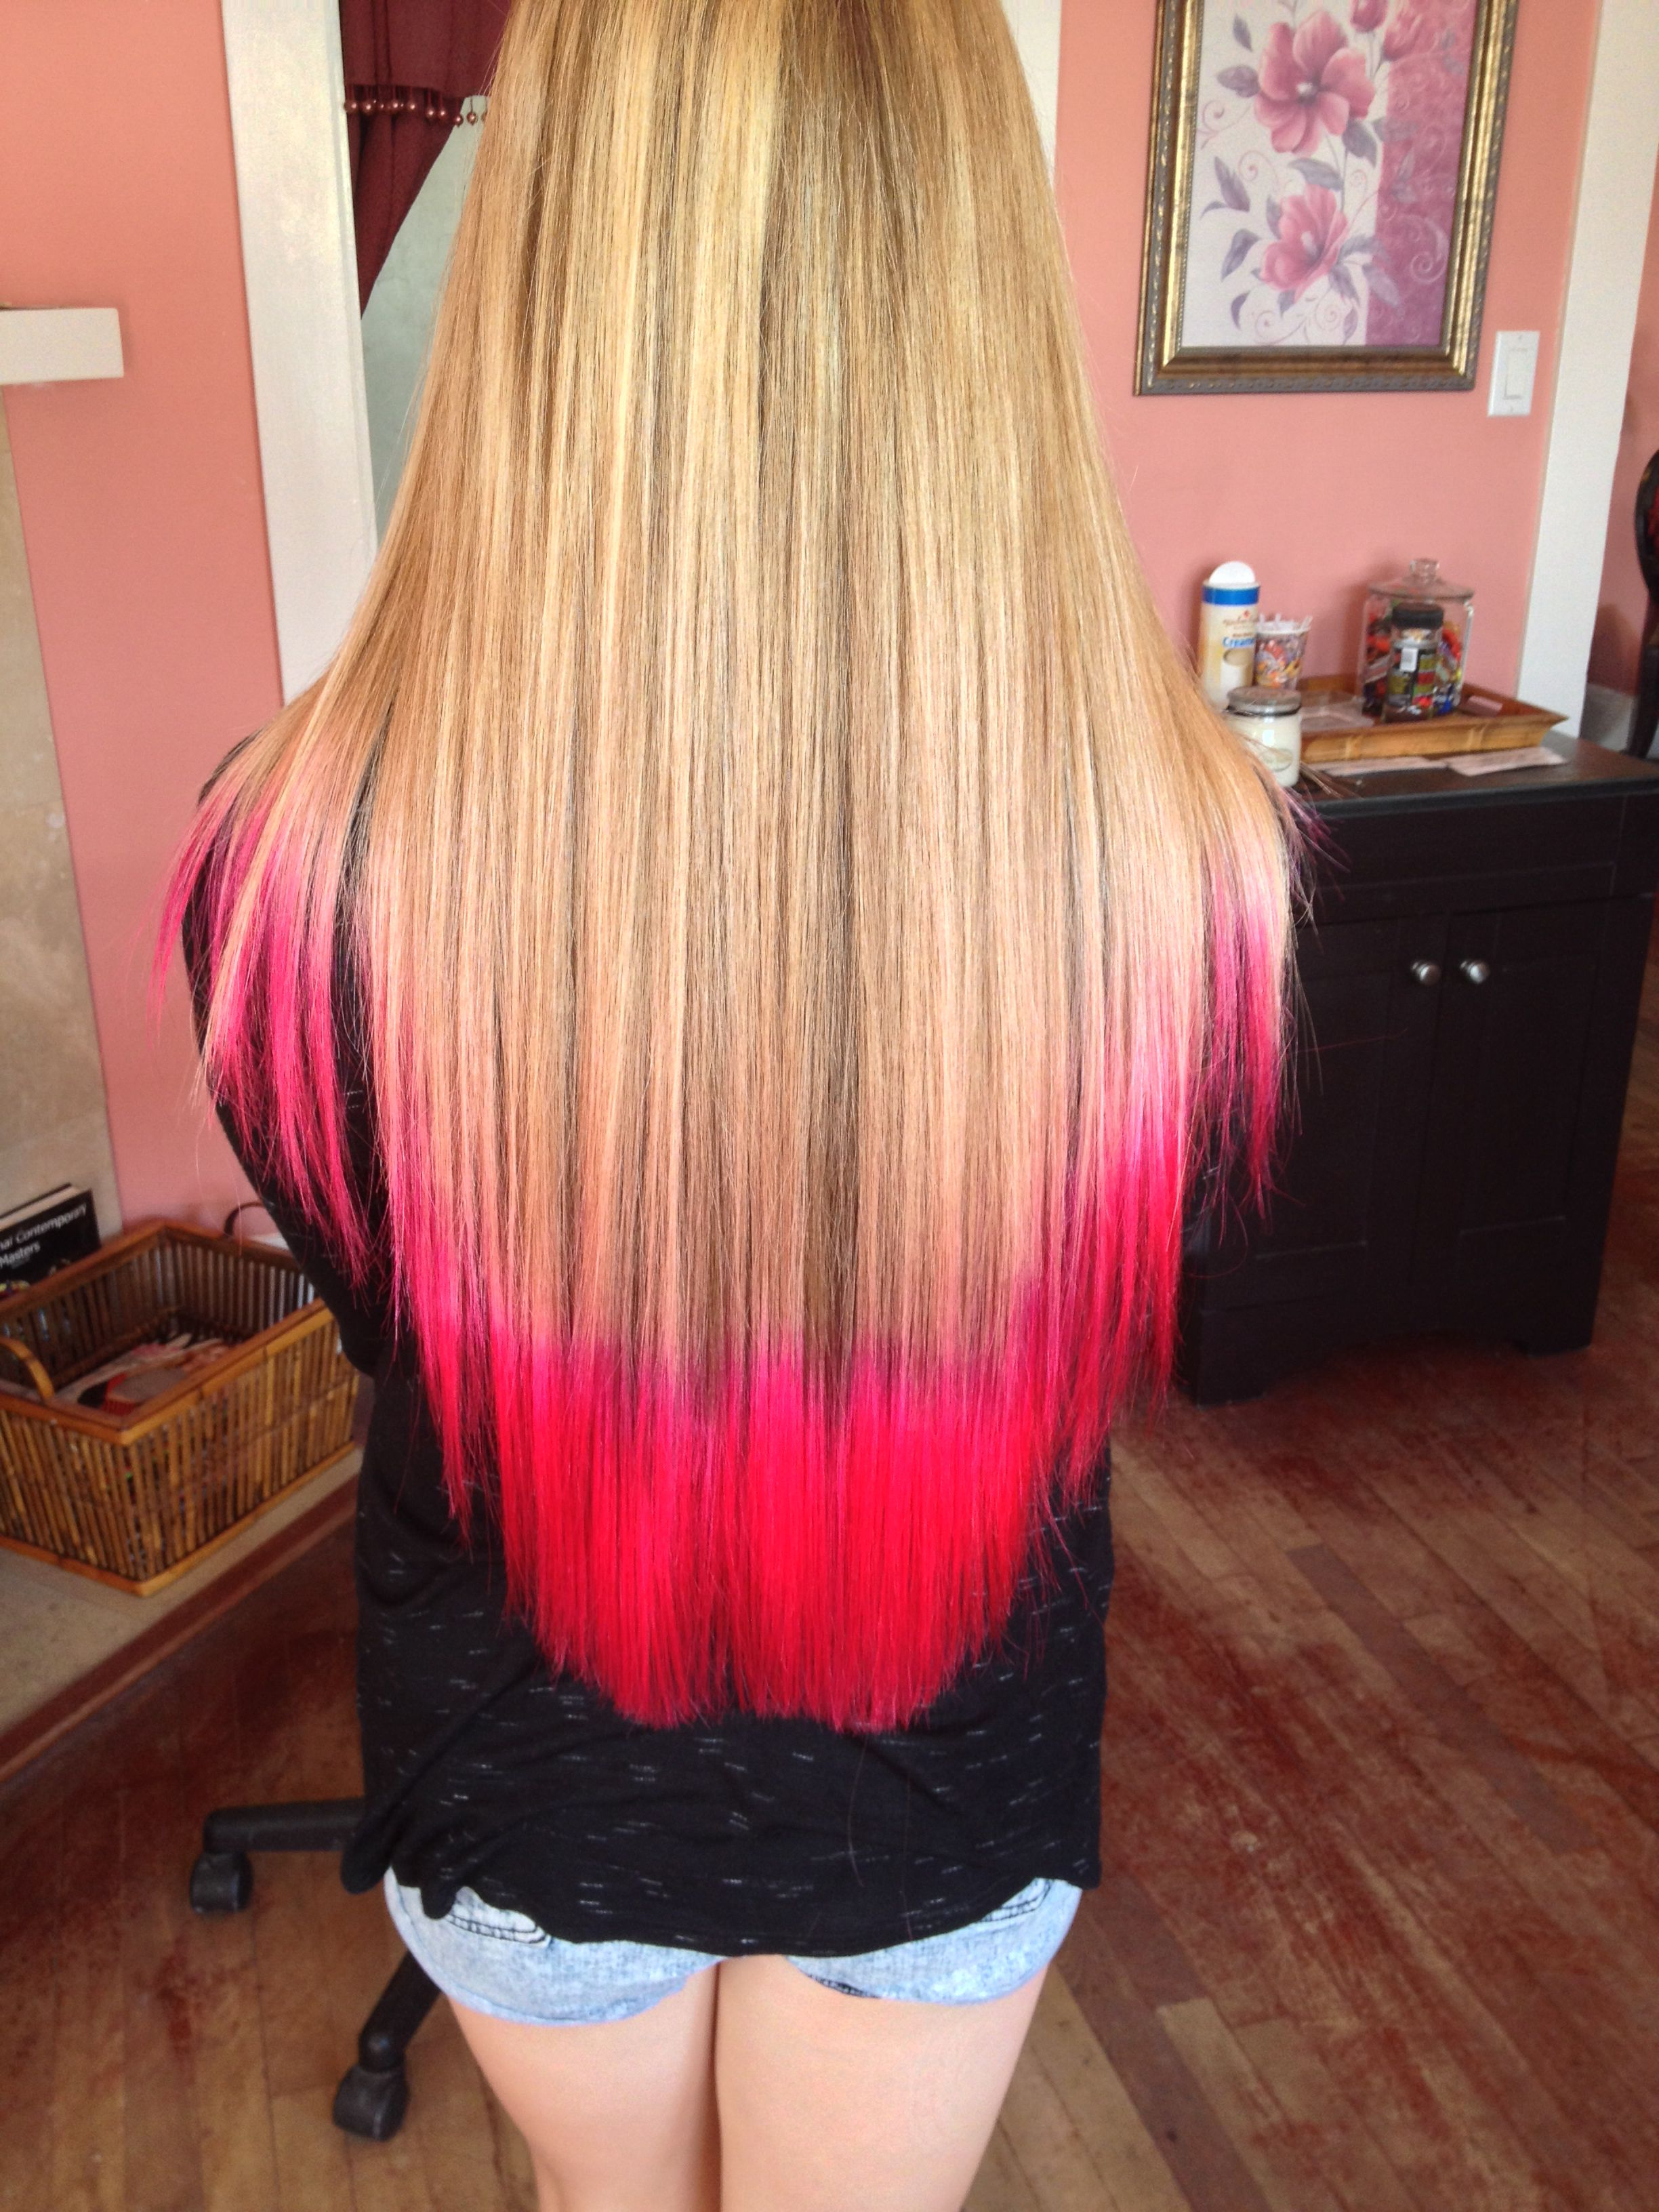 Atomic Pink Tips With Blonde Hair With Images Brown Hair Dye